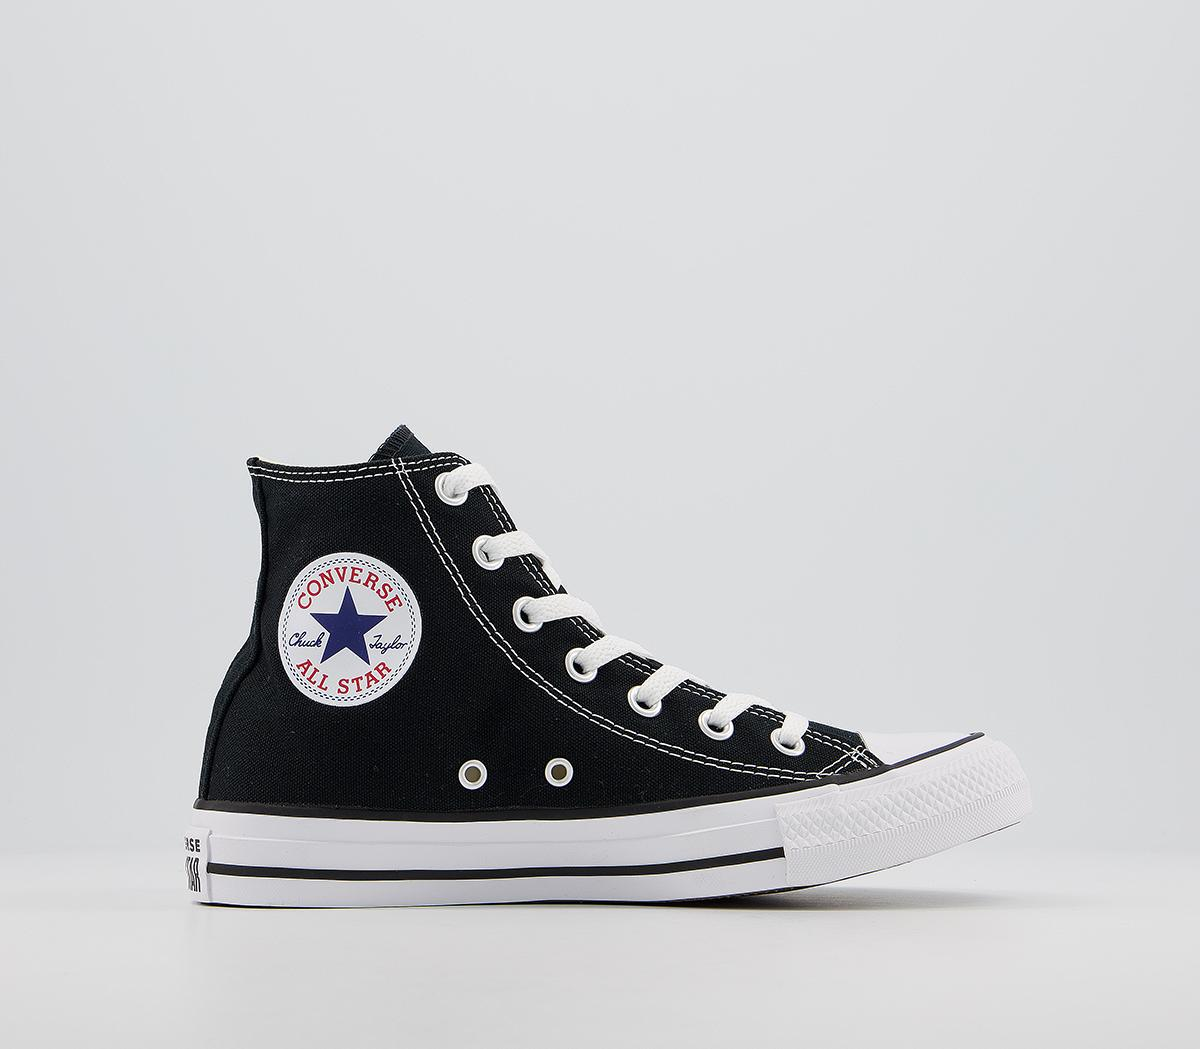 Pais de Ciudadania Perceptible alondra  Converse All Star Hi Trainers Black Canvas - Unisex Sports